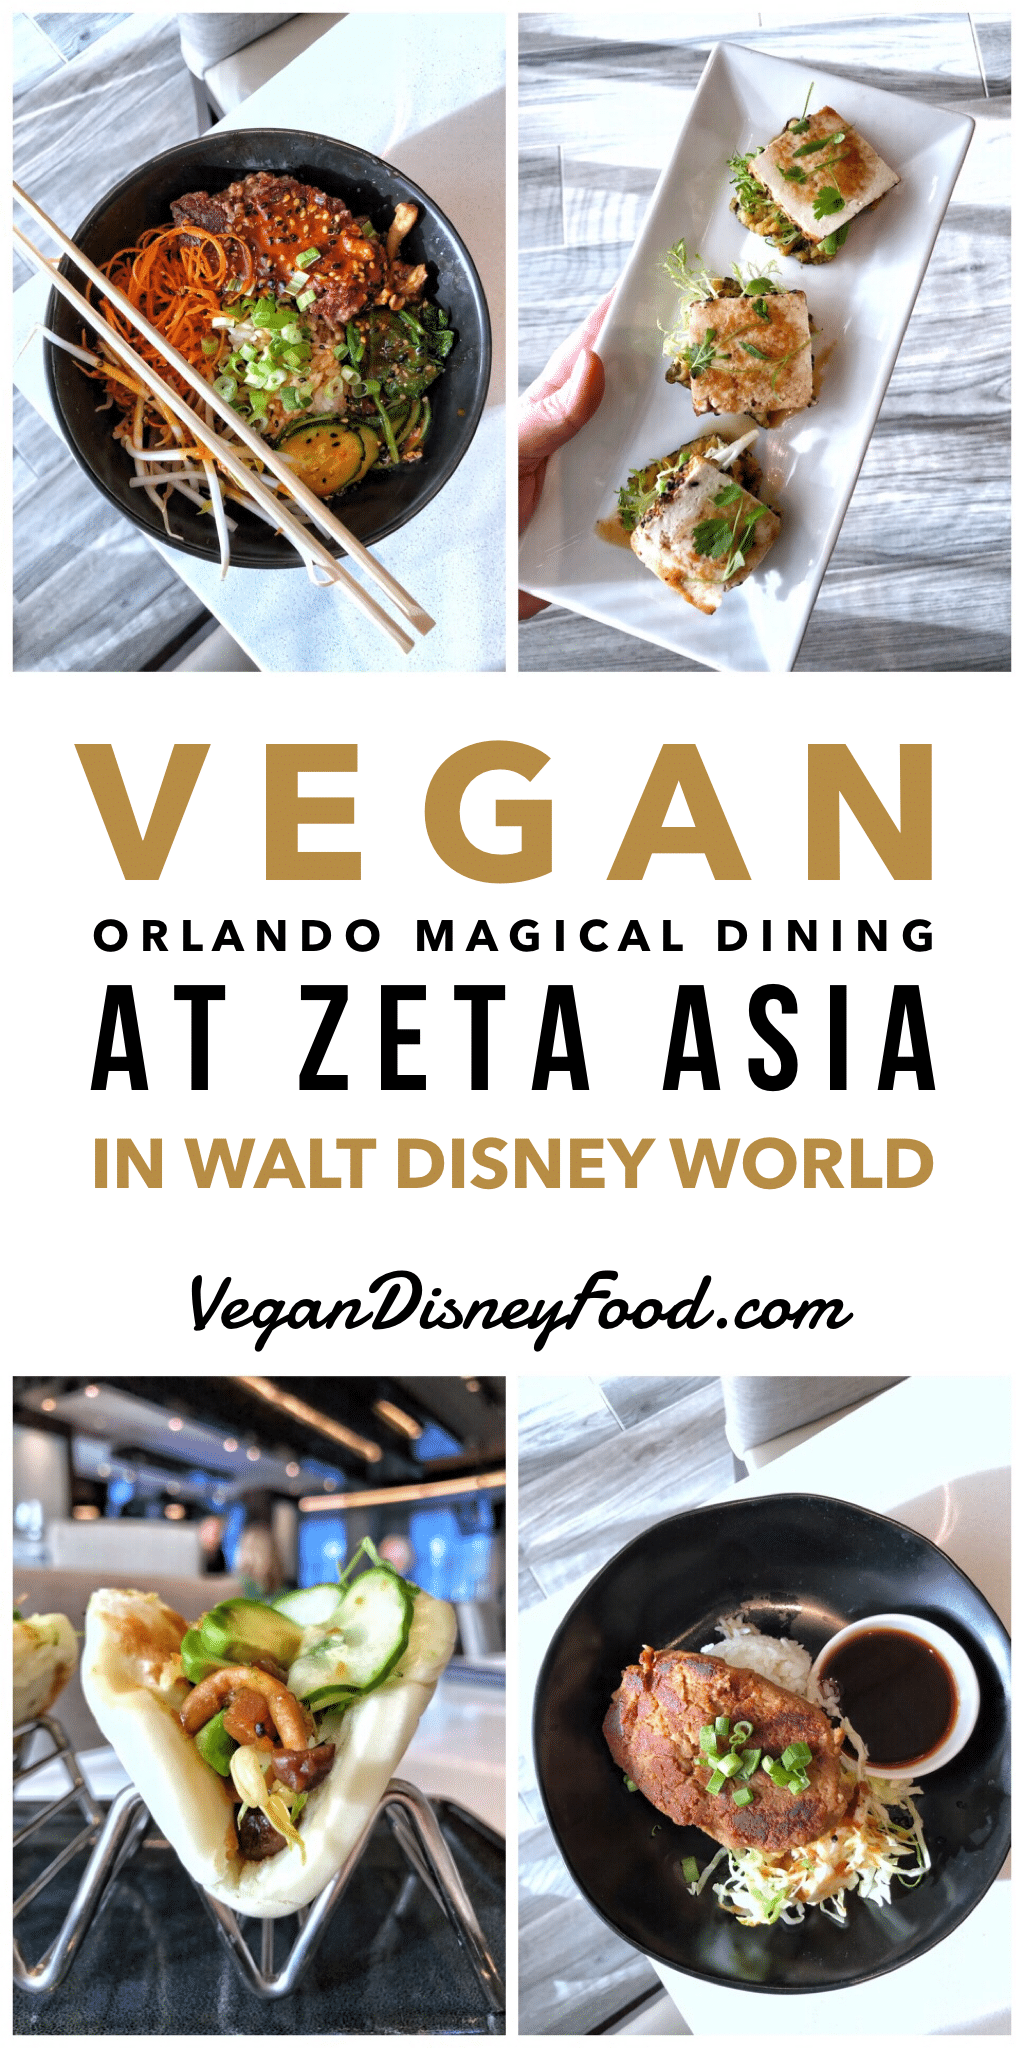 Vegan Orlando Magical Dining Review at Zeta Asia in the Hilton Bonnet Creek at Walt Disney World